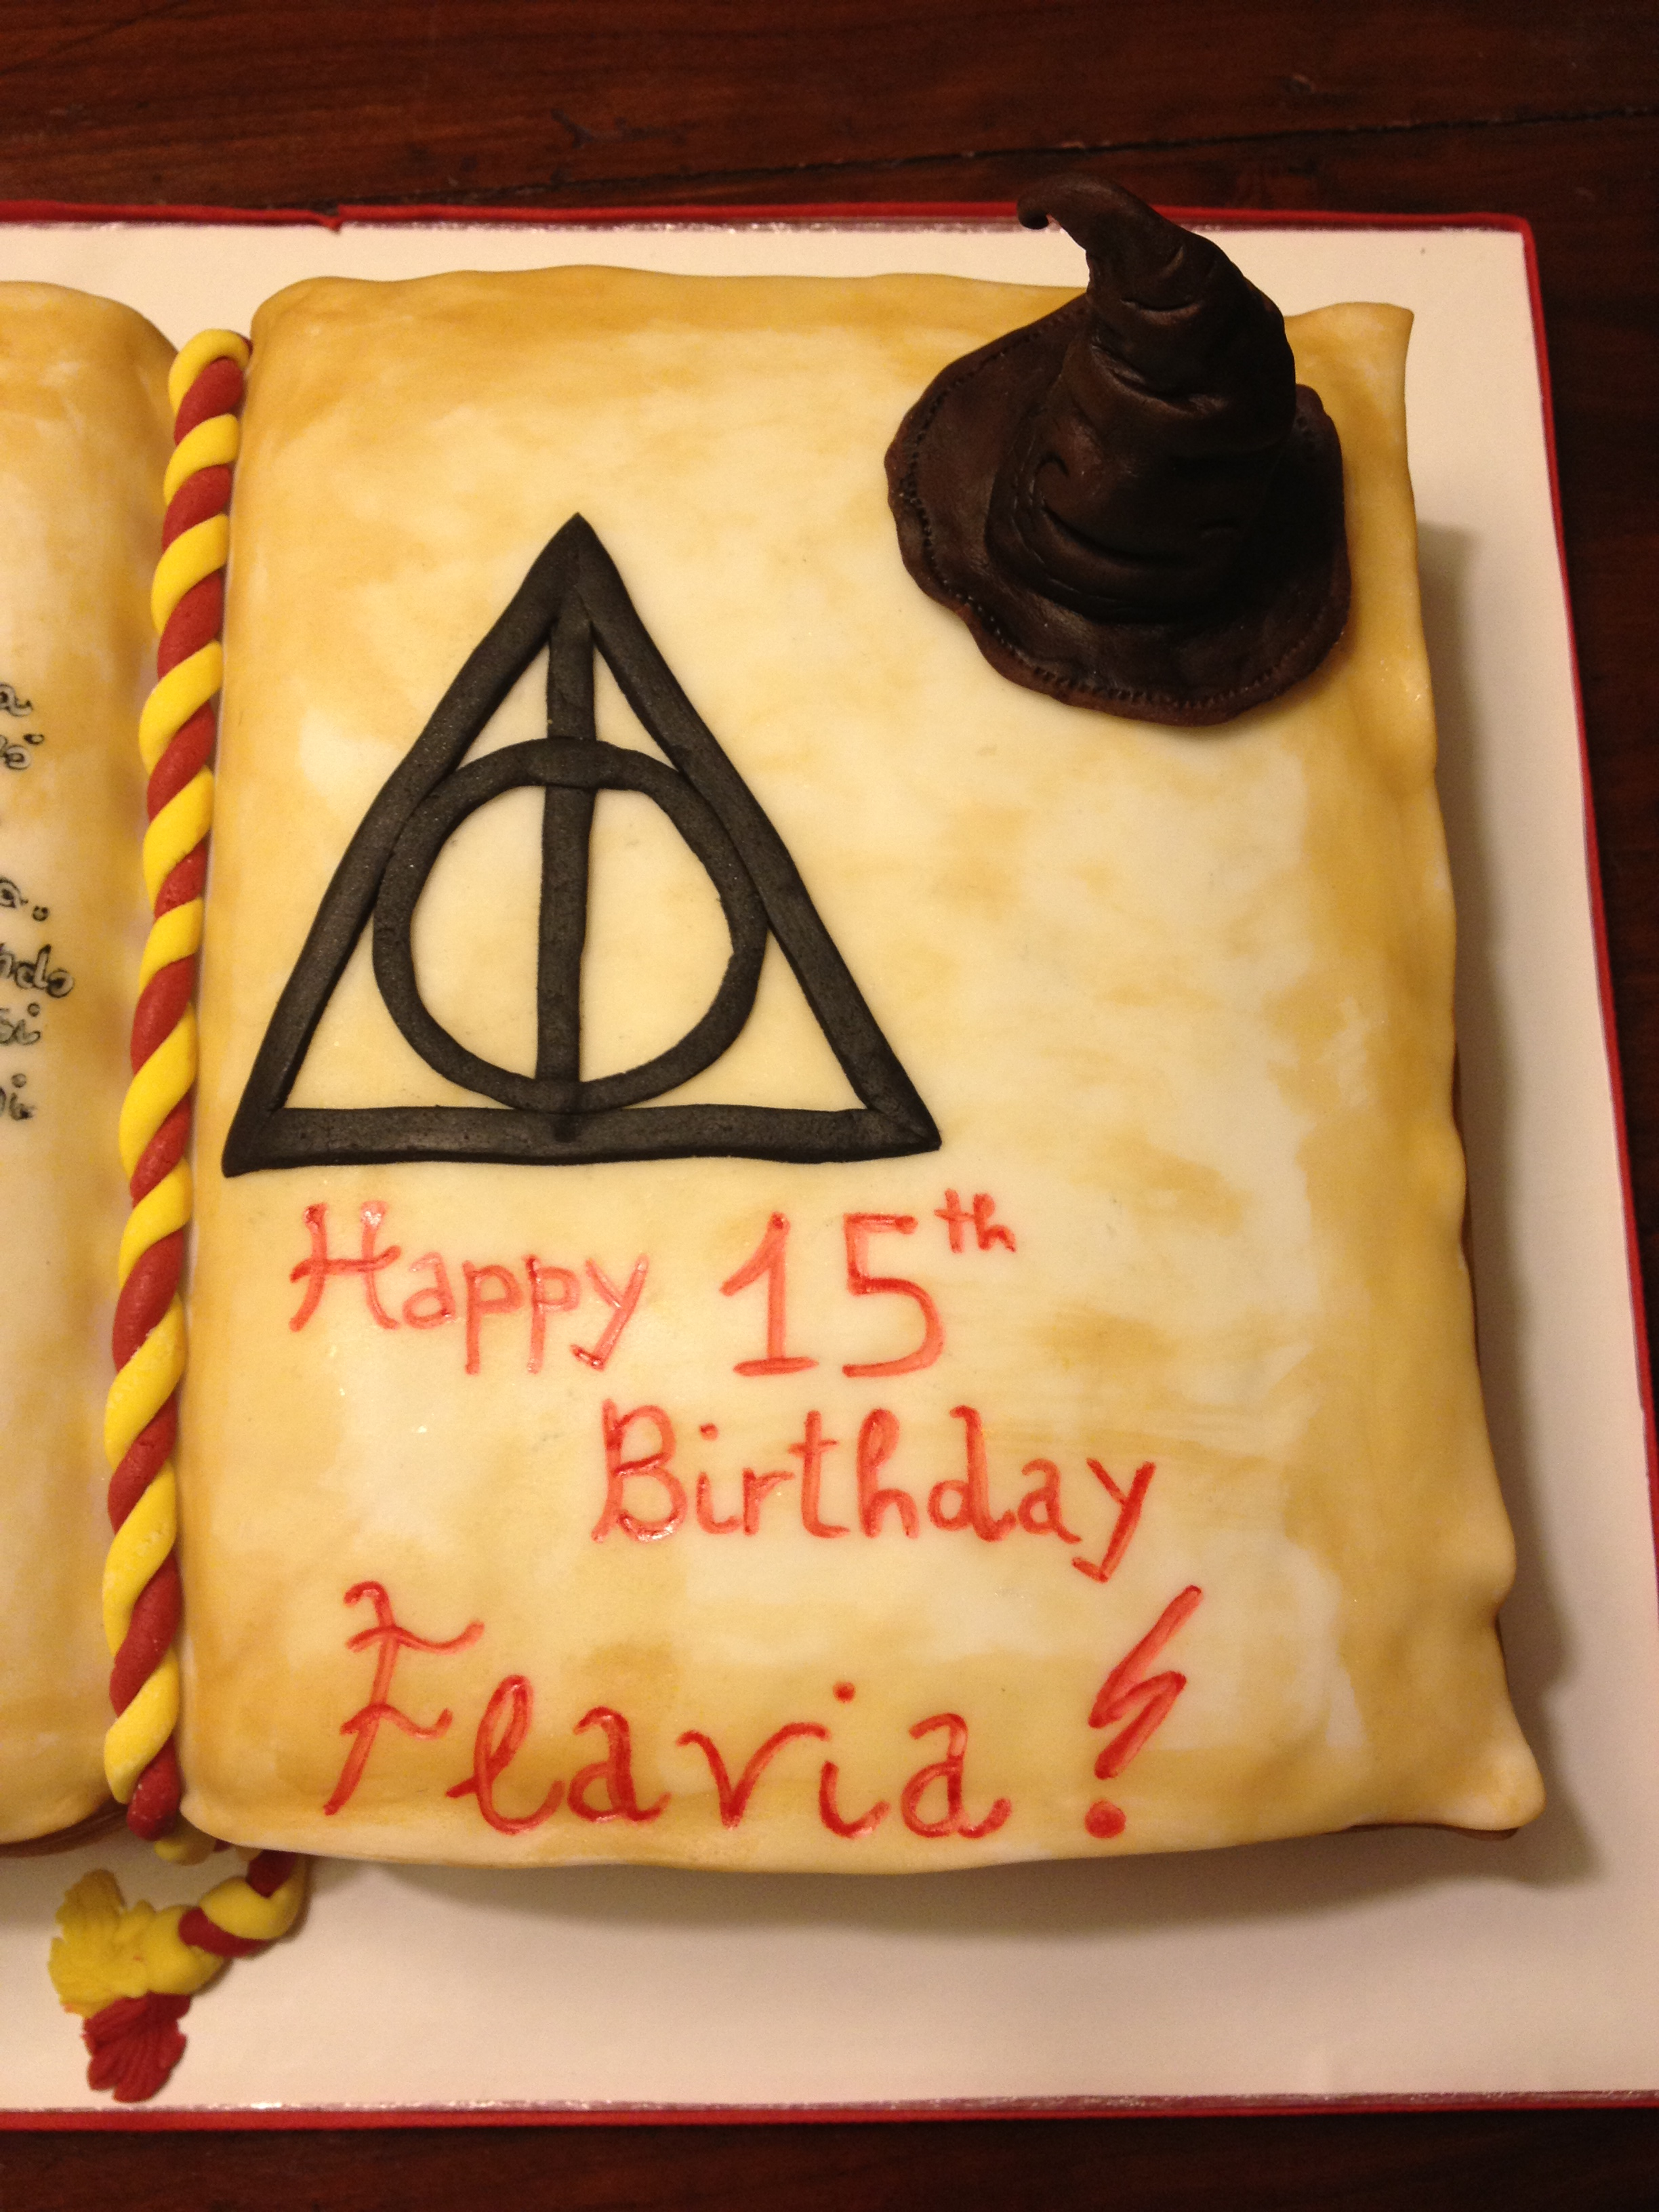 Ultimo Libro Harry Potter Io Ho Letto Tutti I Libri Di Harry Potter Personalcake